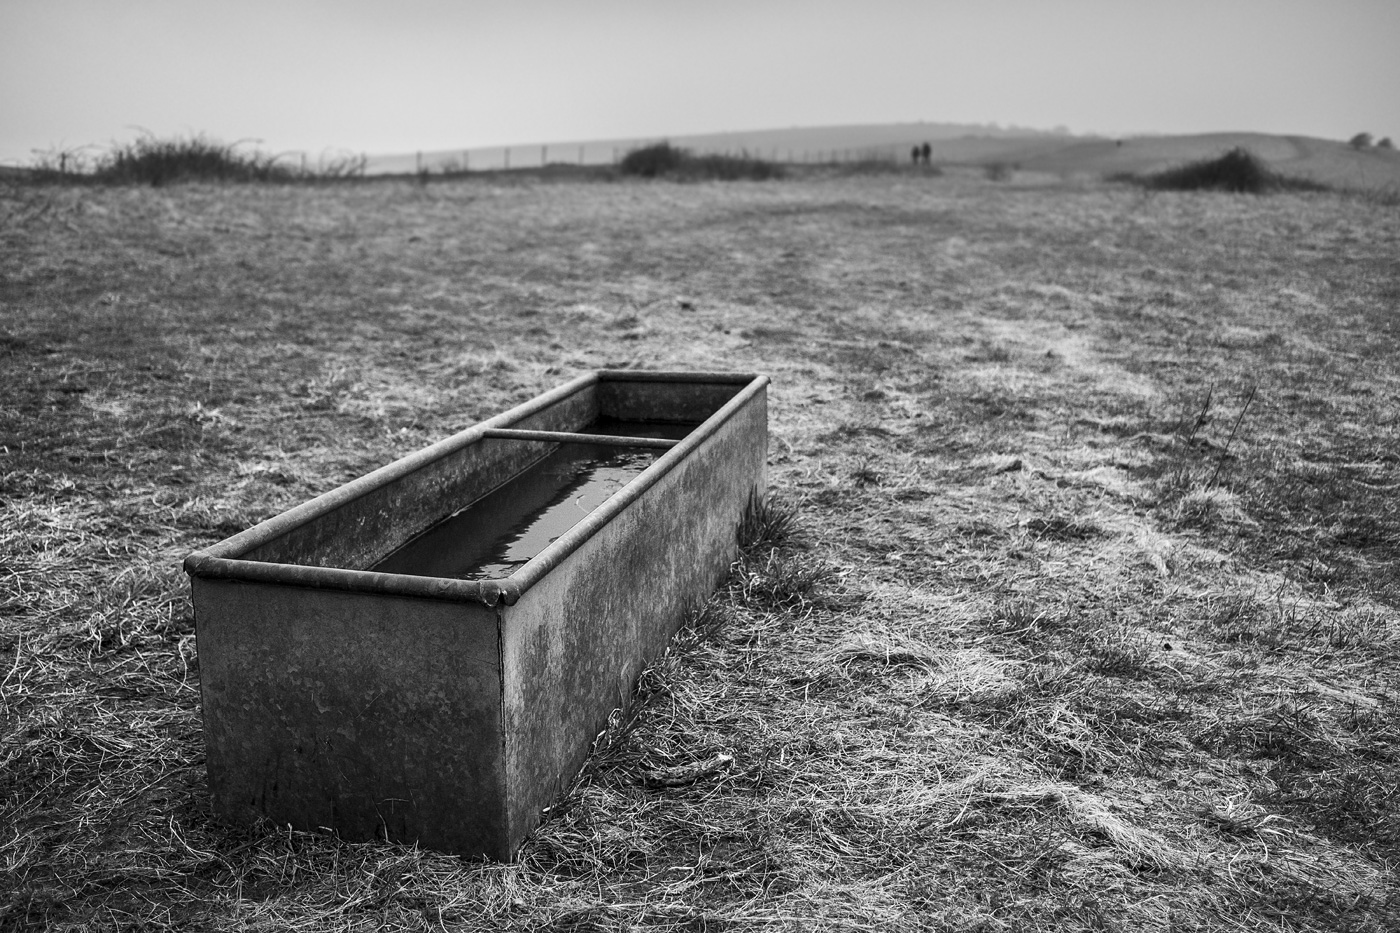 Distant people approaching water trough by the South Downs Way at Ditchling Beacon East Sussex UK overcast day black and white landscape photograph © P. Maton 2018 eyeteeth.net